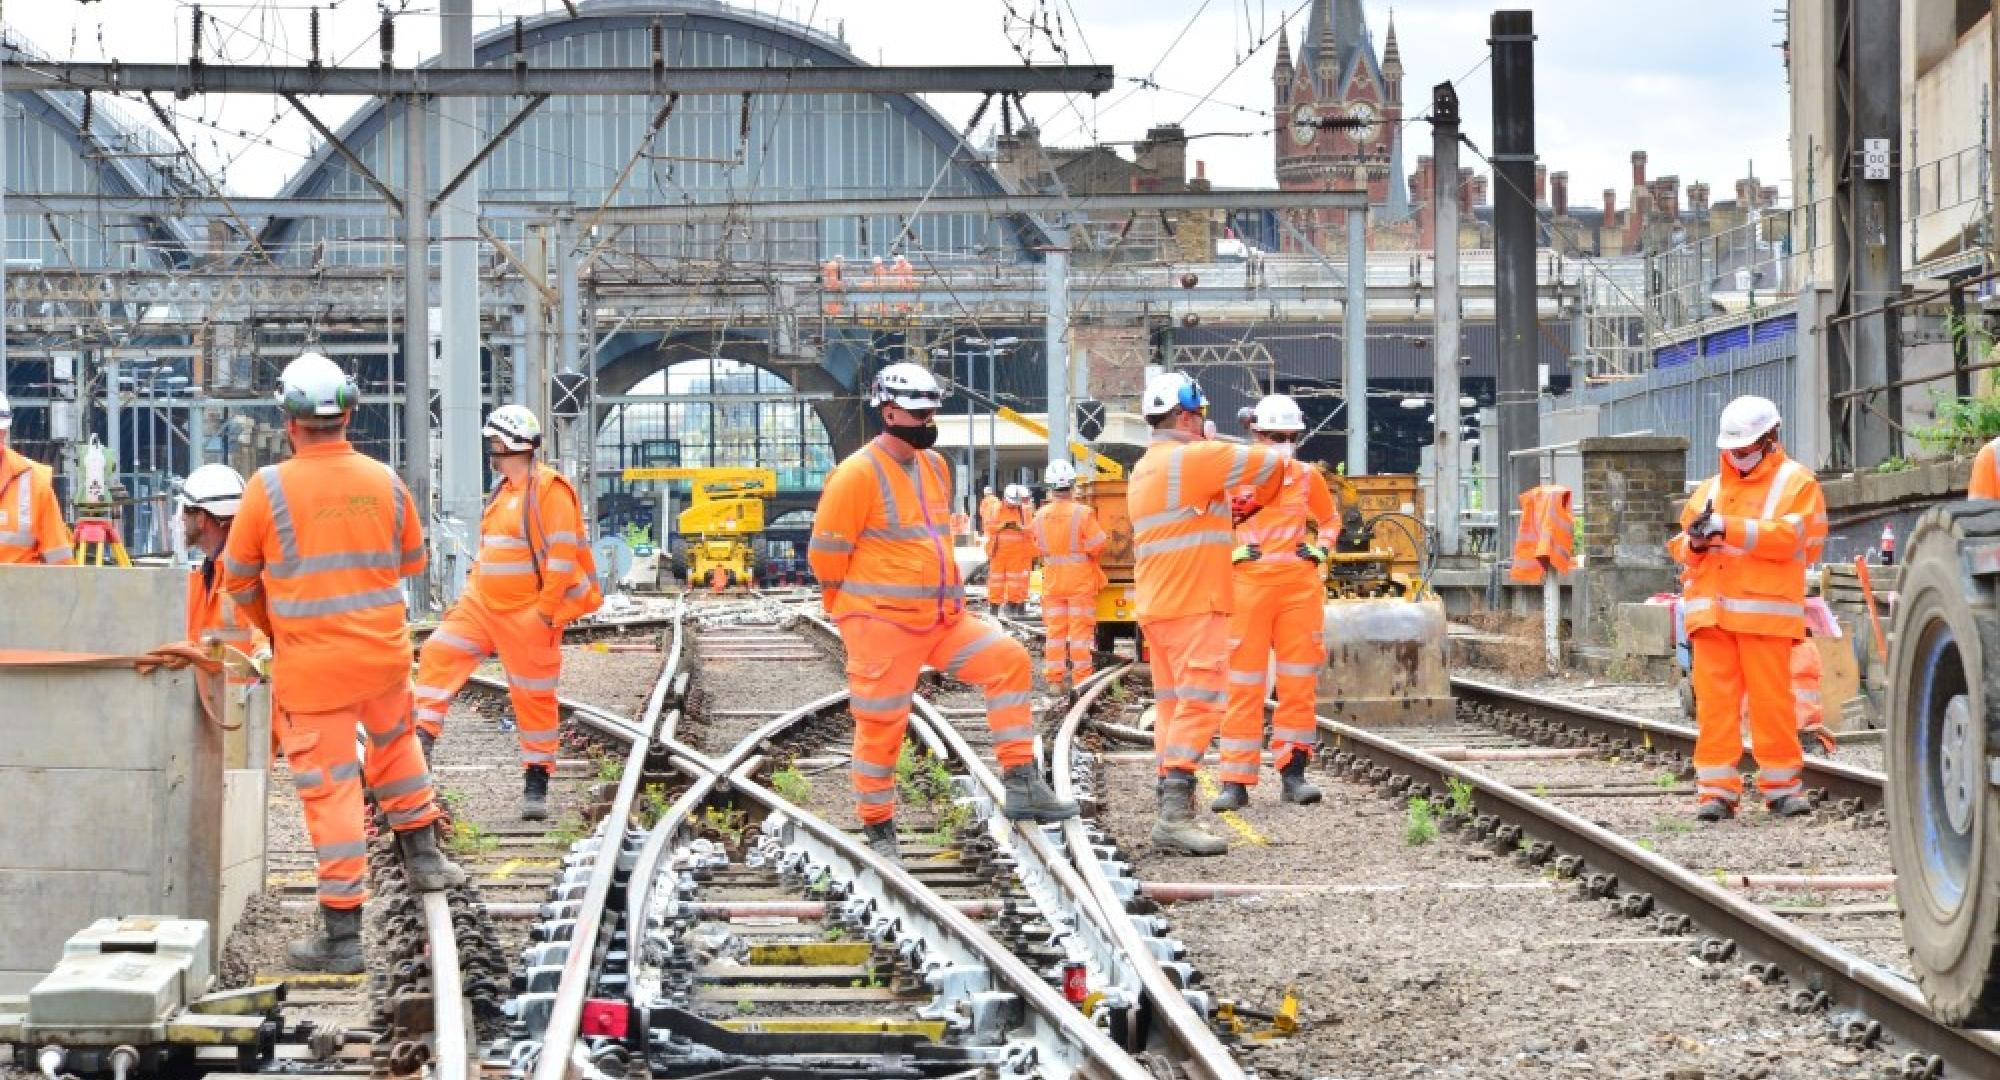 Network Rail engineers on the railway track